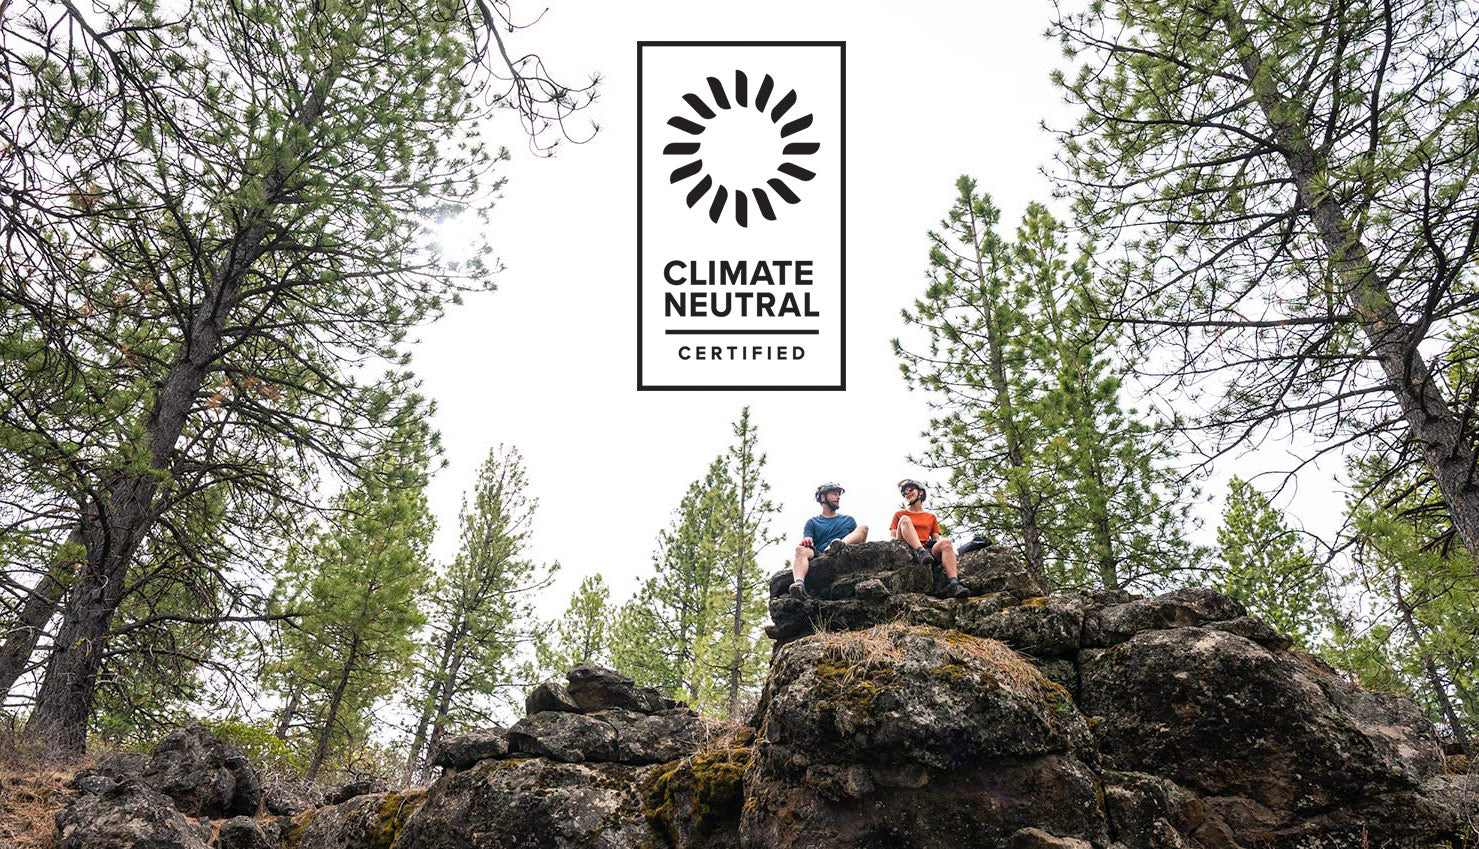 Showers Pass is Climate Neutral Certified 2021